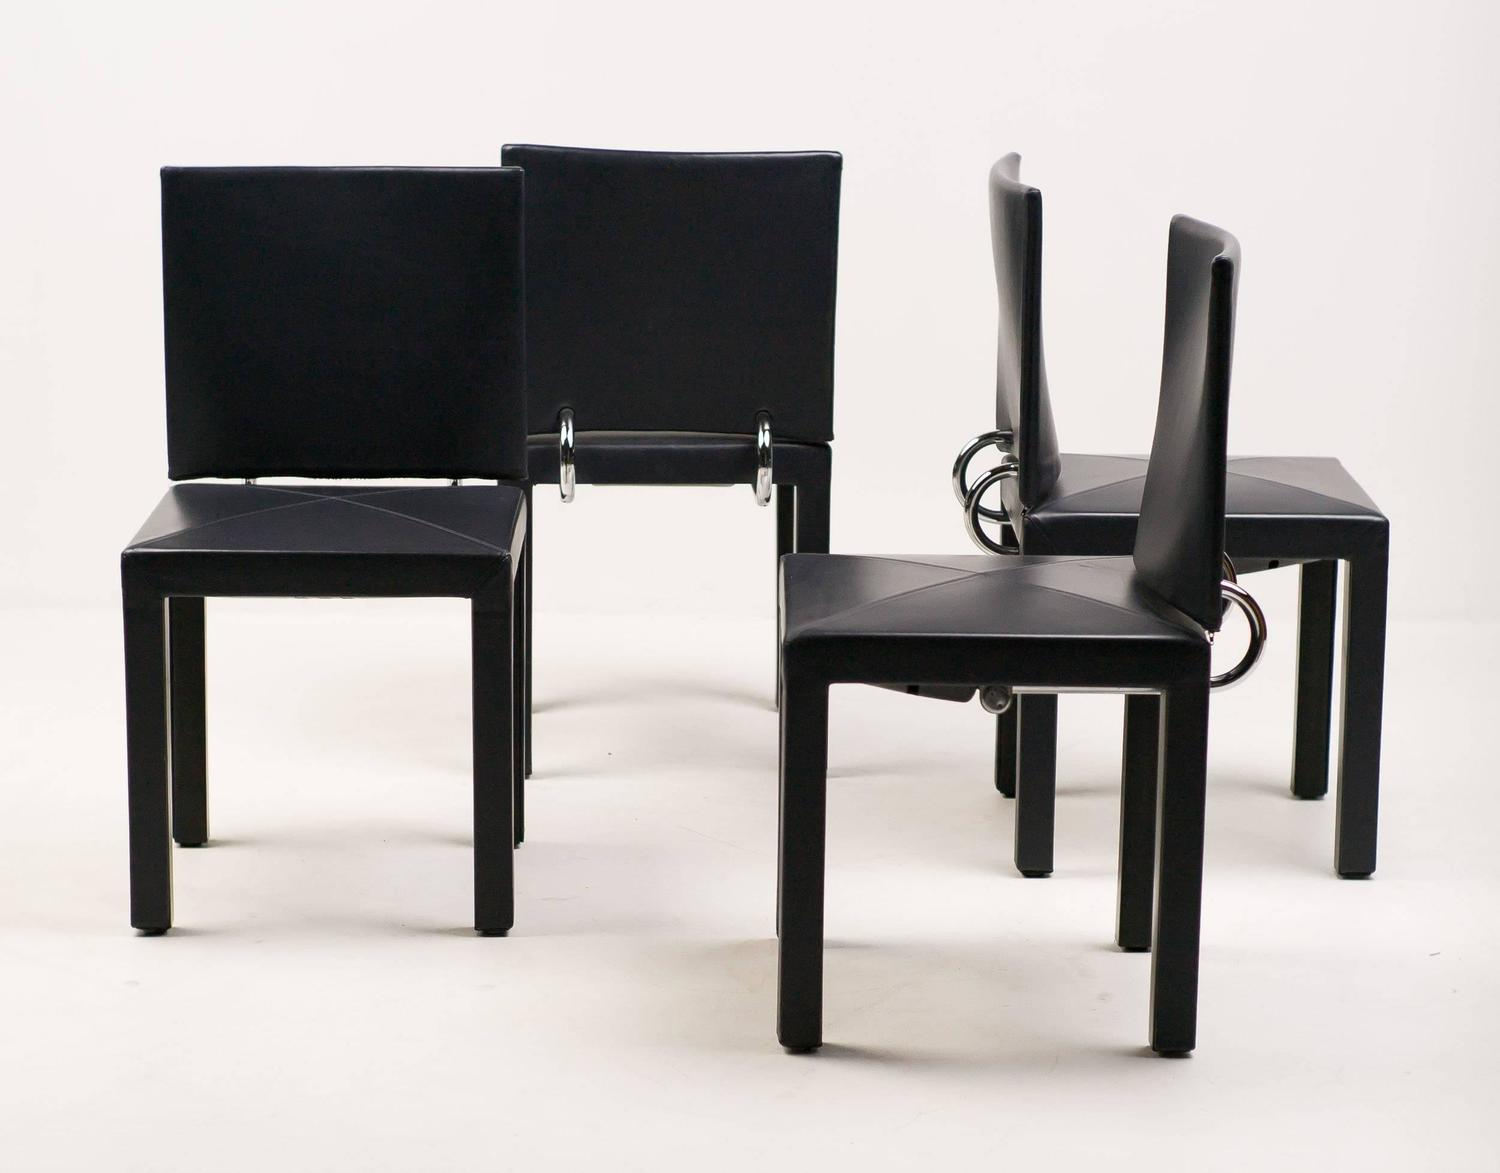 Set of four arcadia chairs by paolo piva for b b italia for B b italia dining room chairs